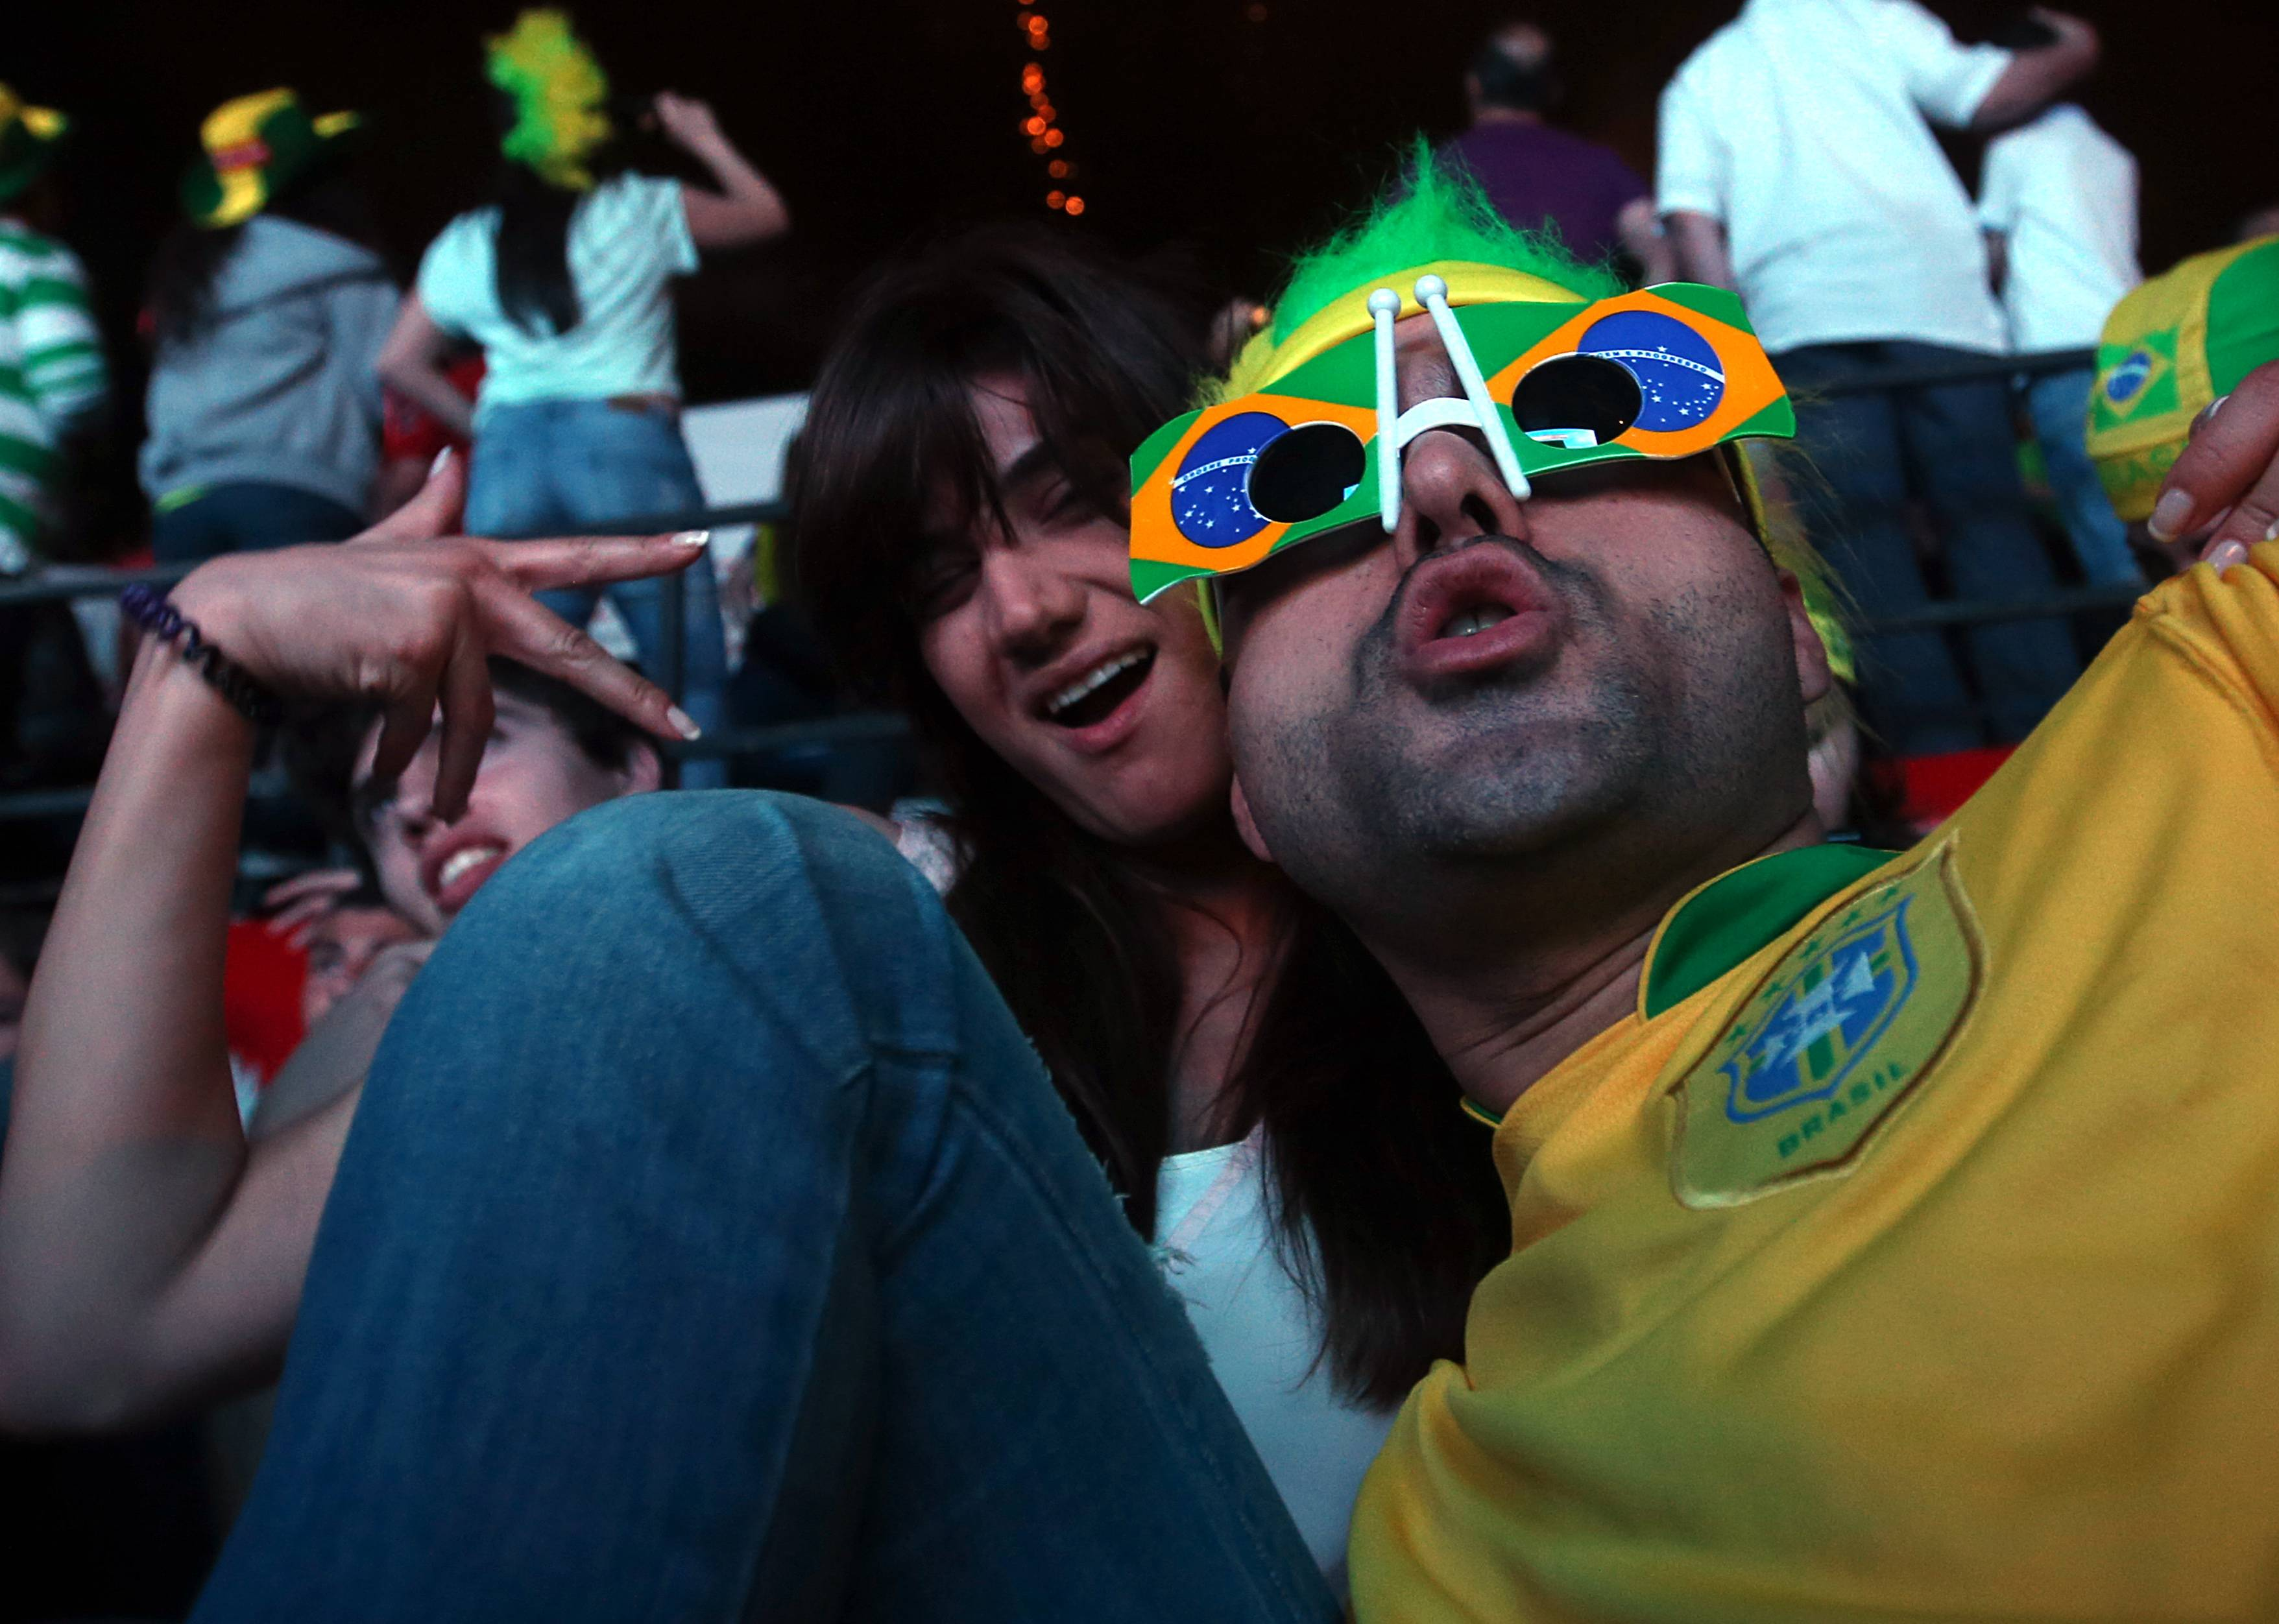 Lebanese soccer fans cheer during the first soccer match of the World Cup between Brazil and Croatia, at a fan park, in downtown Beirut, Lebanon.